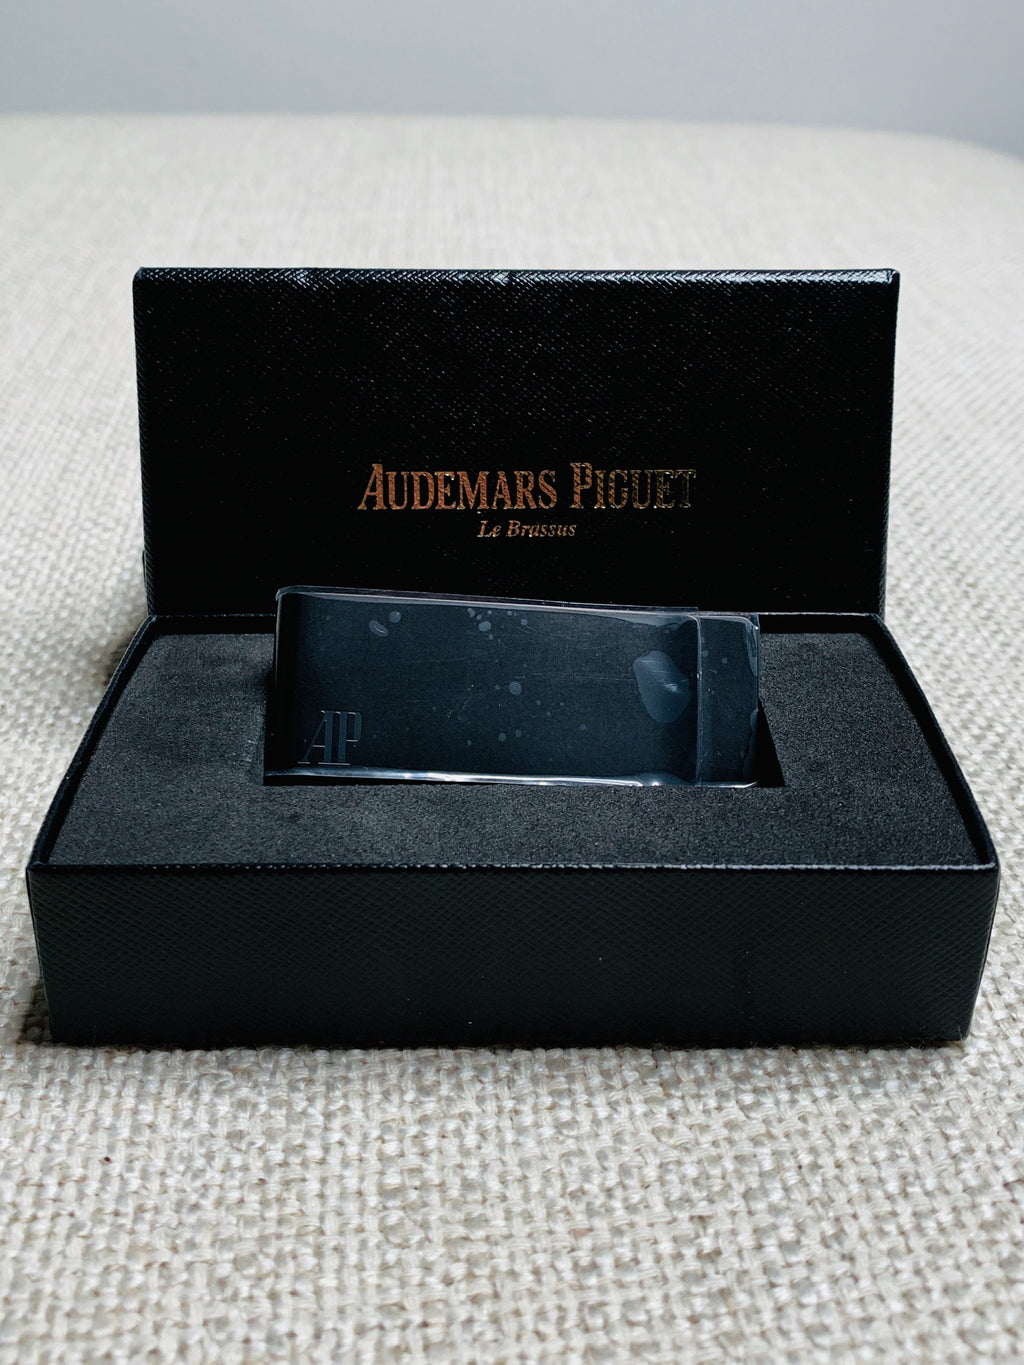 Audemars Piguet Carbon Coated Money Clip